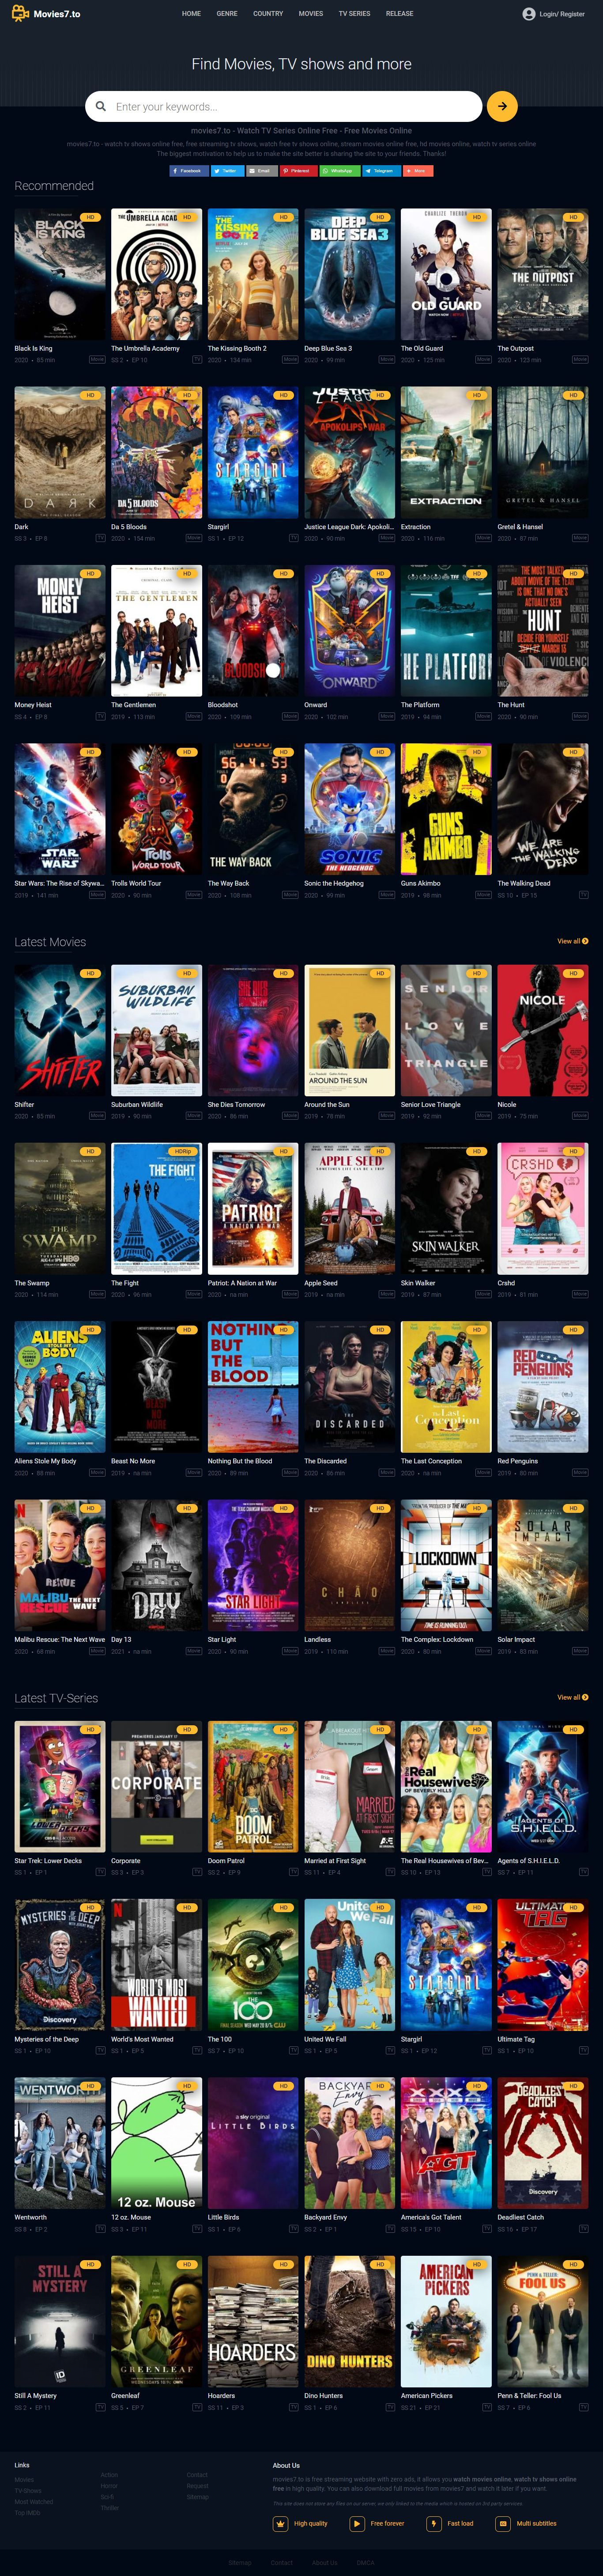 Free Movies Without Sign Up Or Paying In 2021 Tv Series To Watch Tv Series Online Watch Free Tv Shows